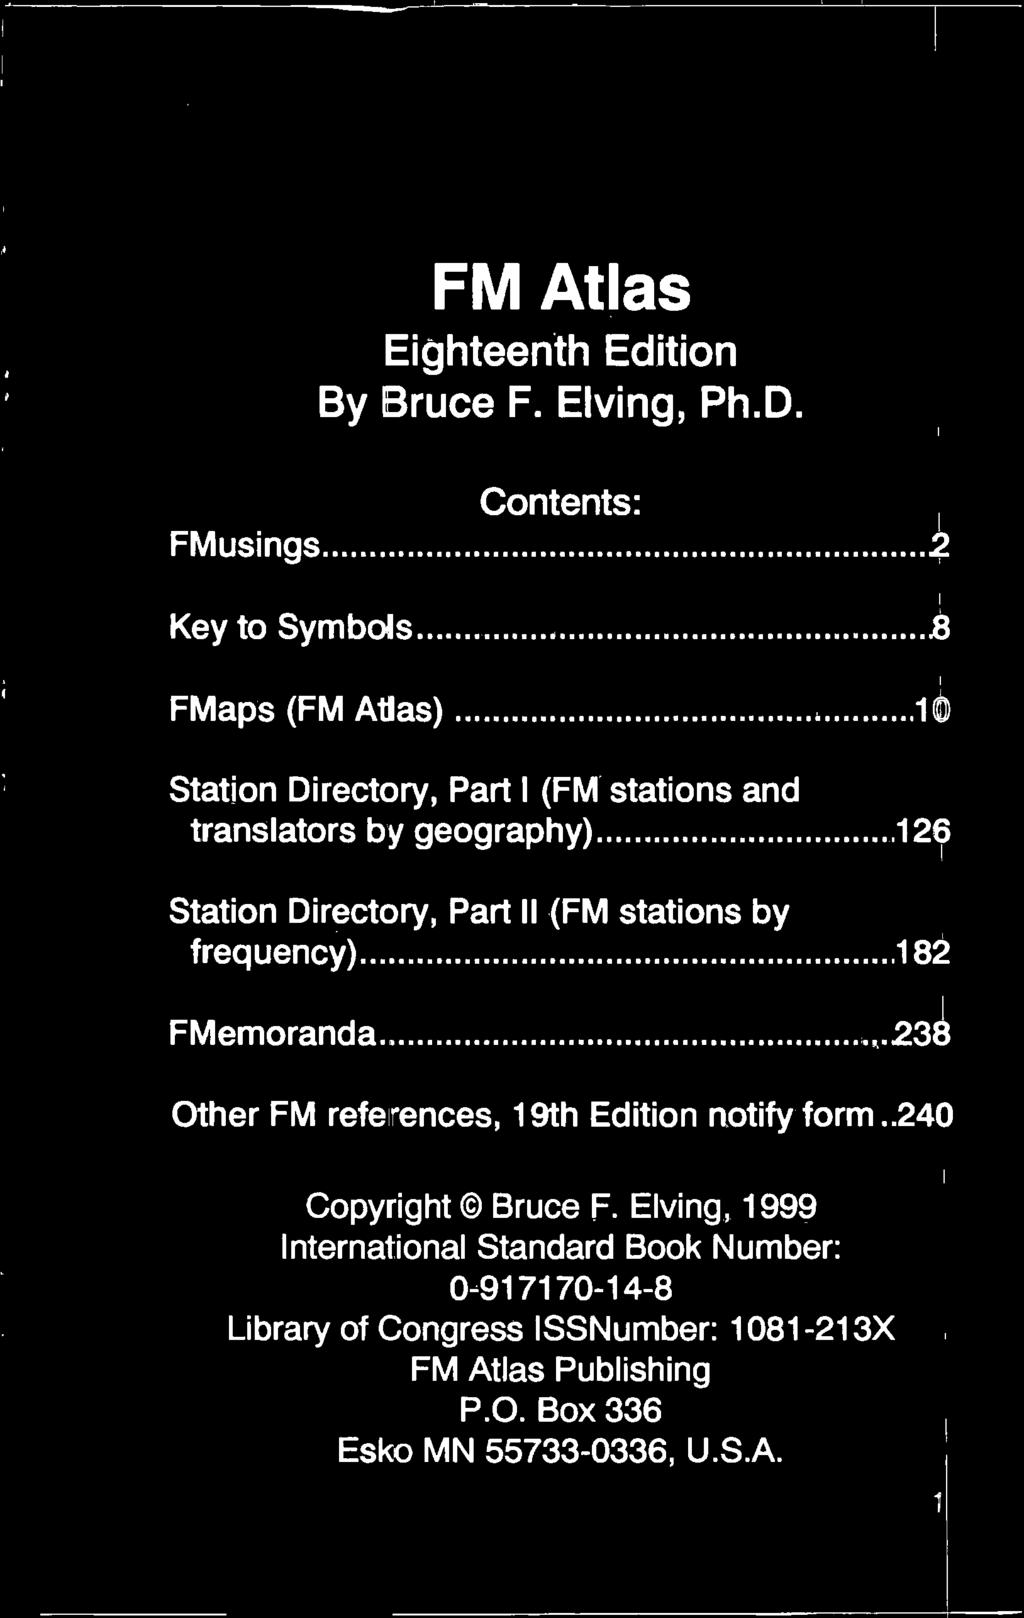 FM Atlas Eighteenth Edition By Bruce F. Elving, Ph.D. Contents: FMusings 2 Key to Symbols.